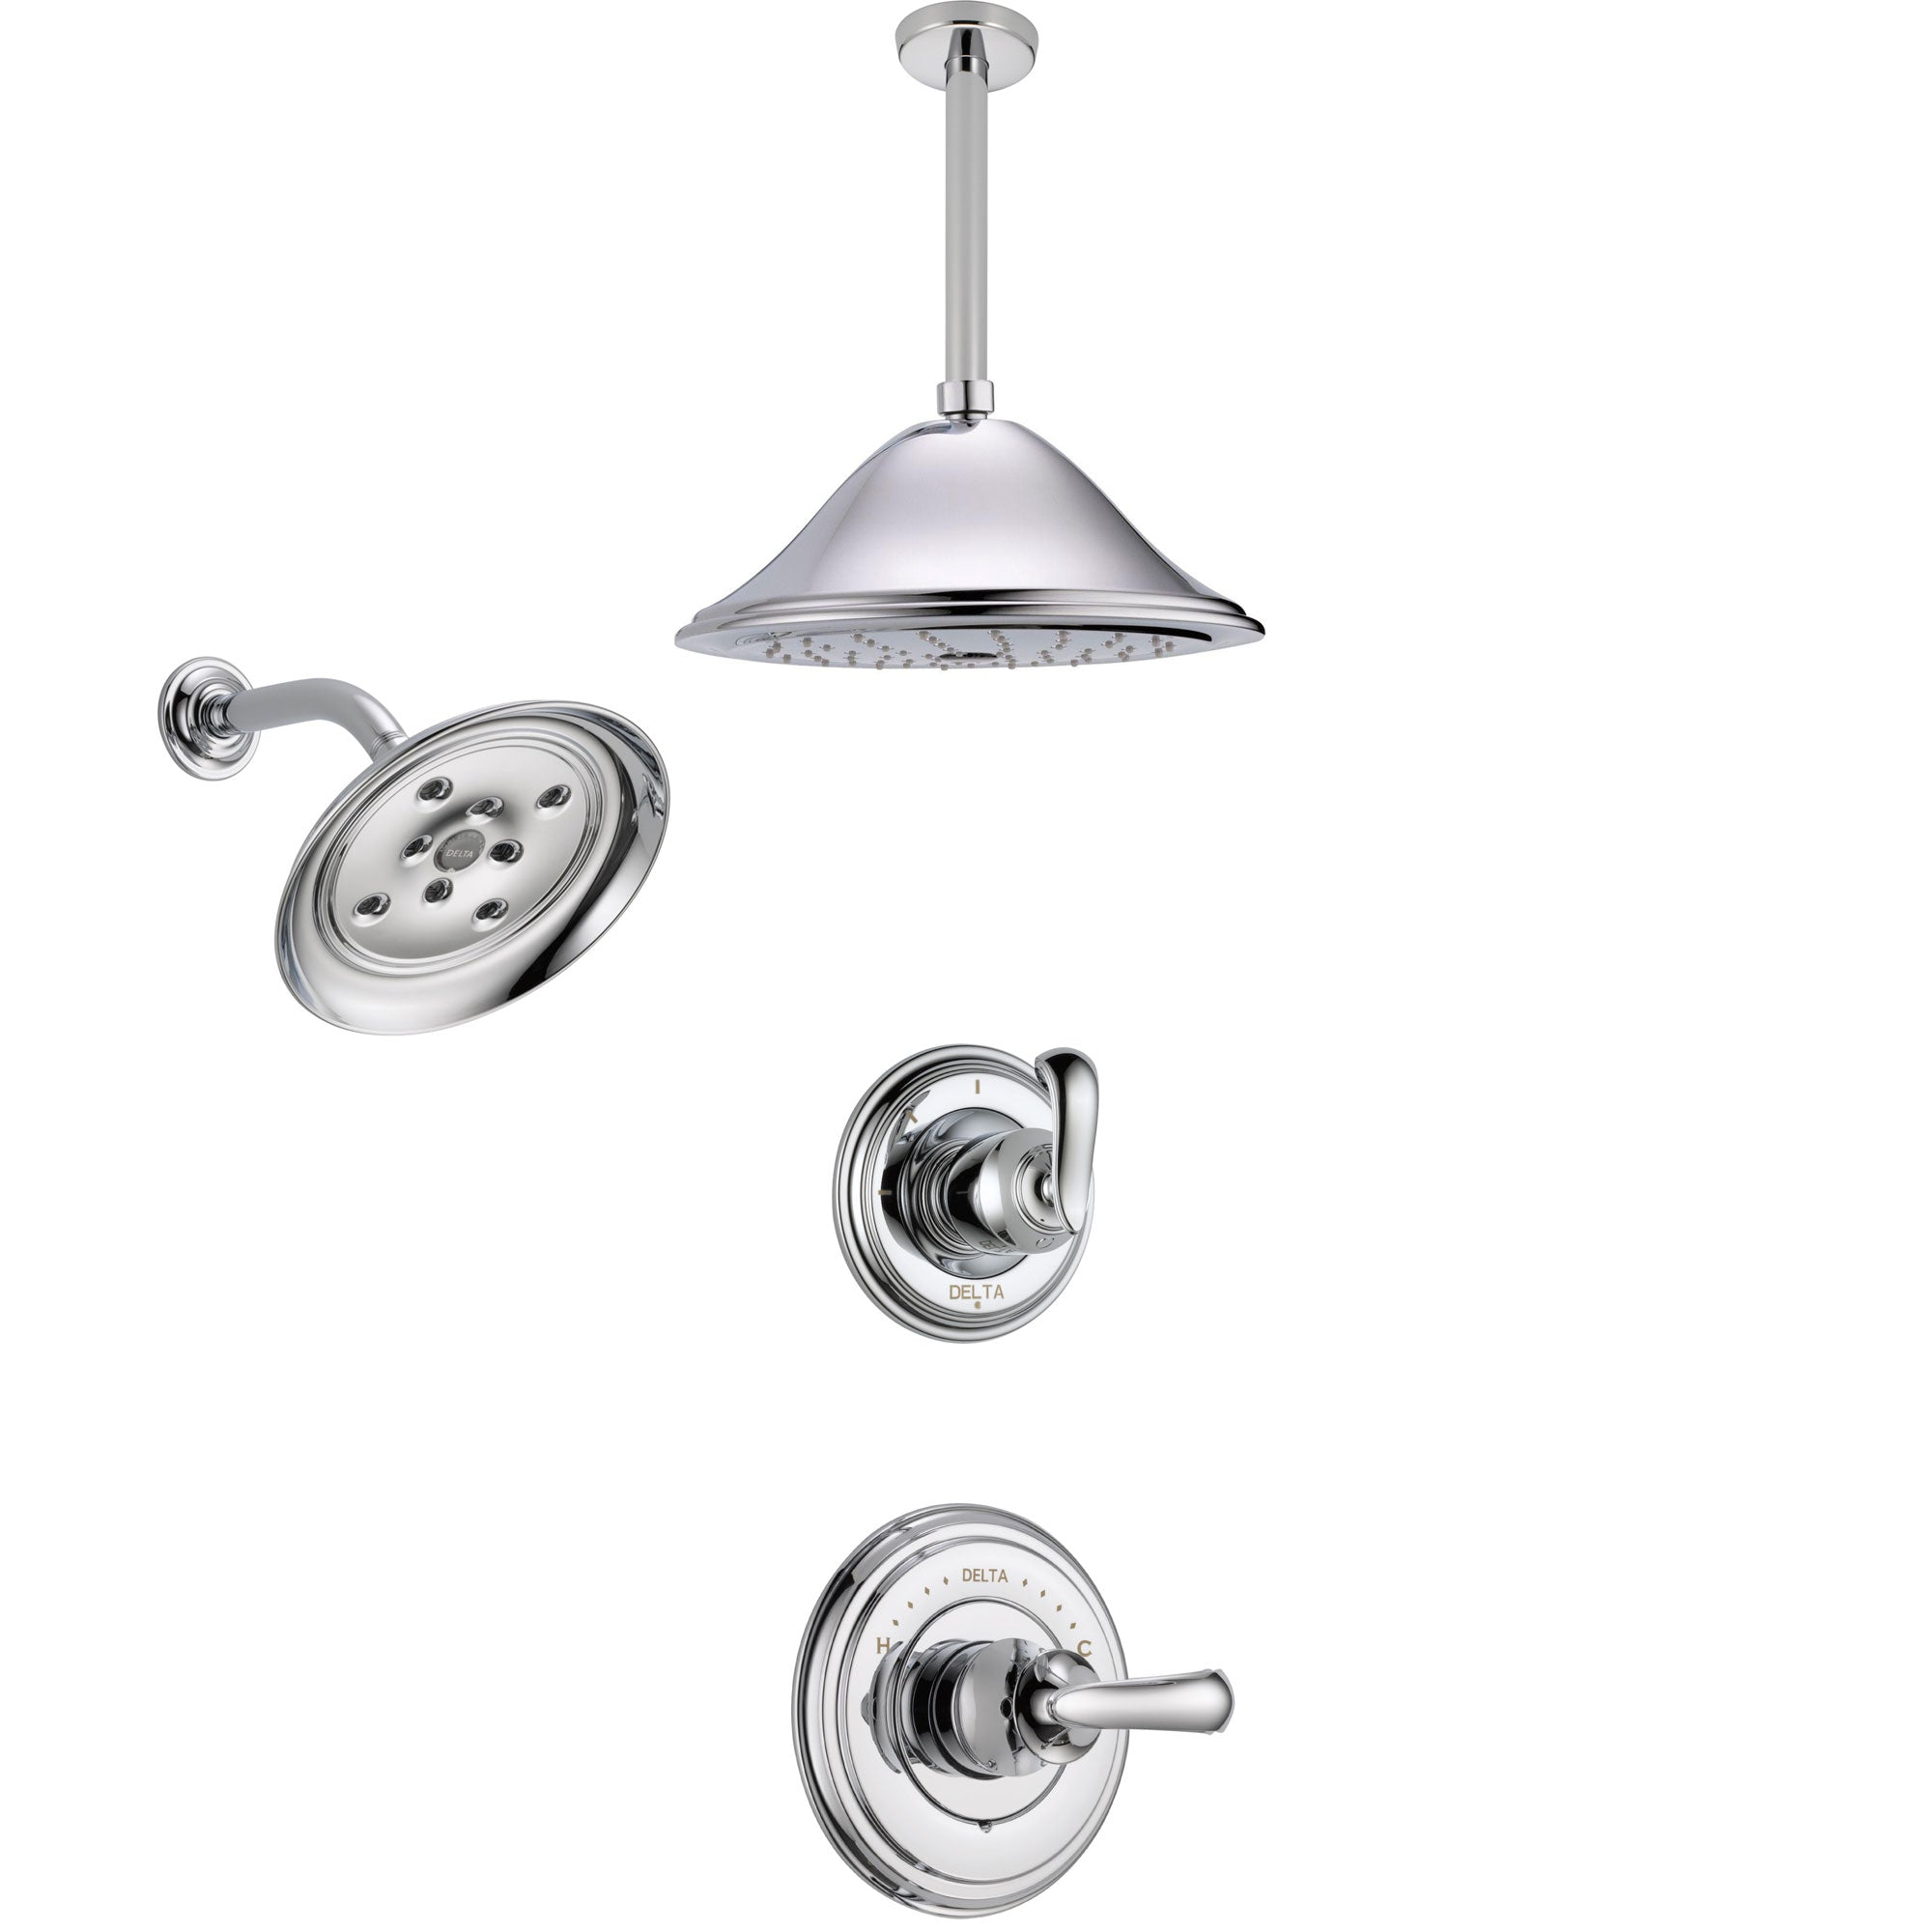 Delta Cassidy Chrome Finish Shower System with Control Handle, 3-Setting Diverter, Showerhead, and Ceiling Mount Showerhead SS1429716